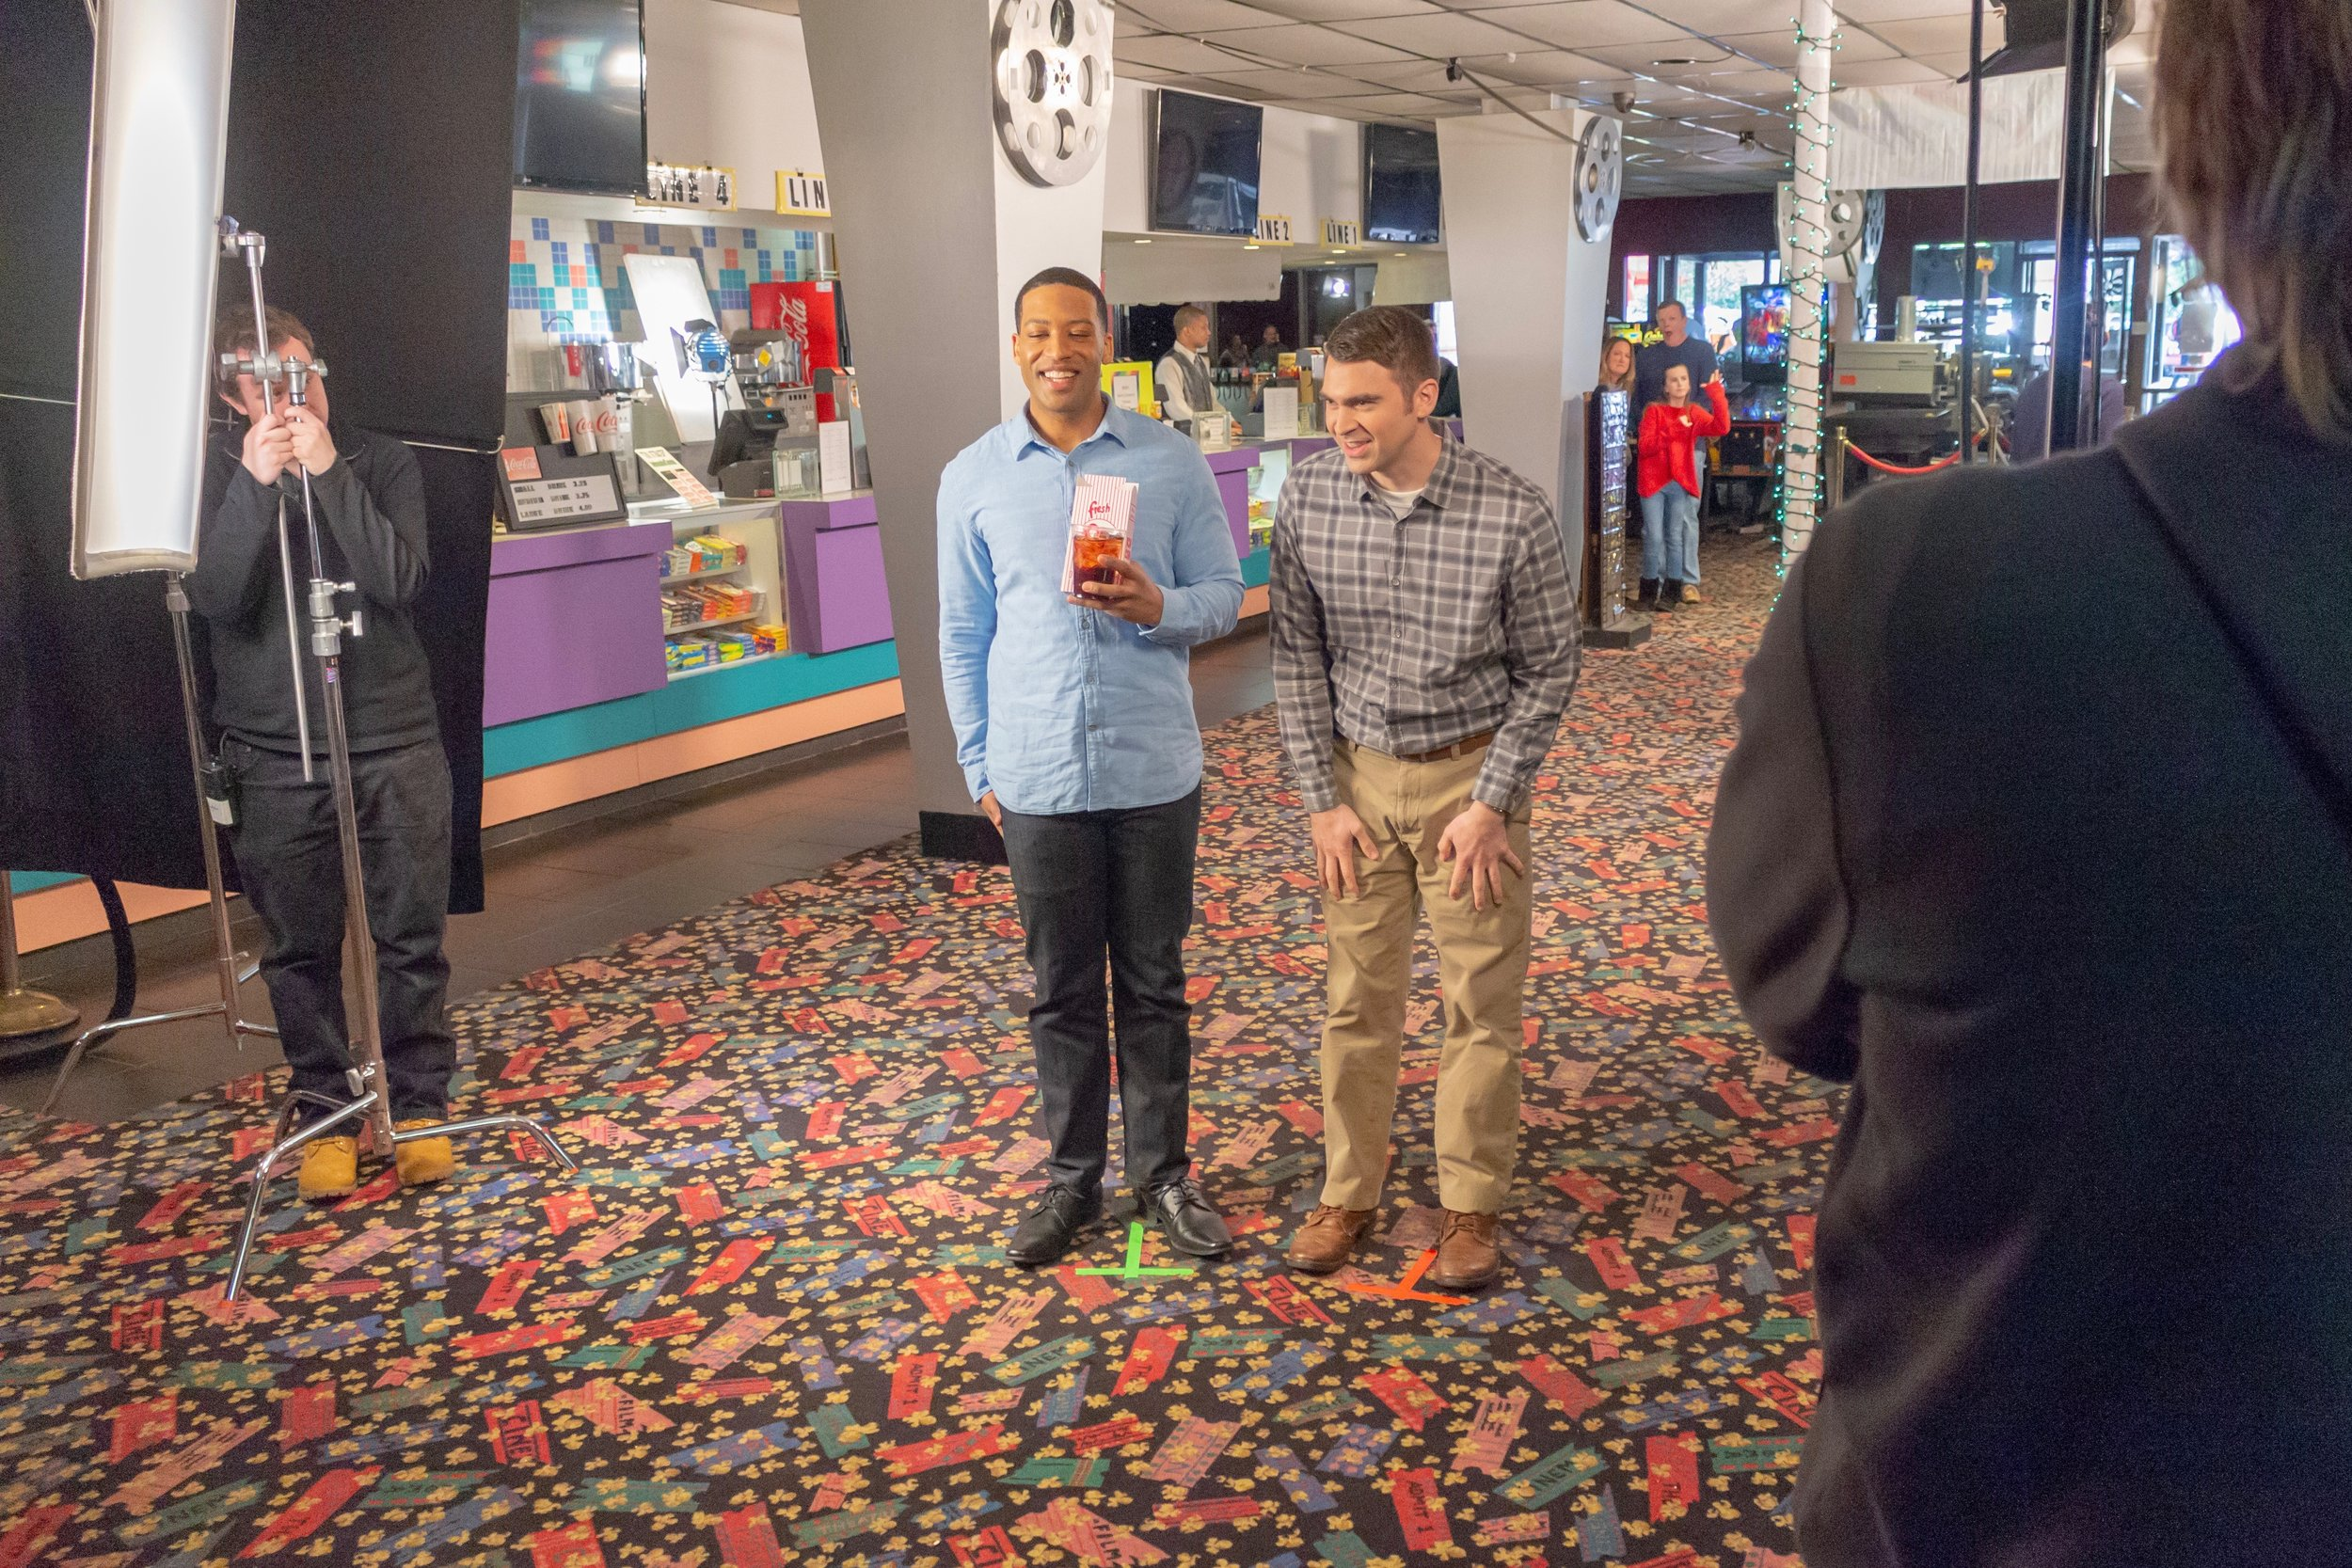 In the lobby of Mission Valley Cinema, Loosha Jones (left) and Jordan Estes rehearse a key scene for the  Oh Crappy Day  feature. Photo by Jonathan Okafo. Copyright © 2019 Dagtype Films, LLC.